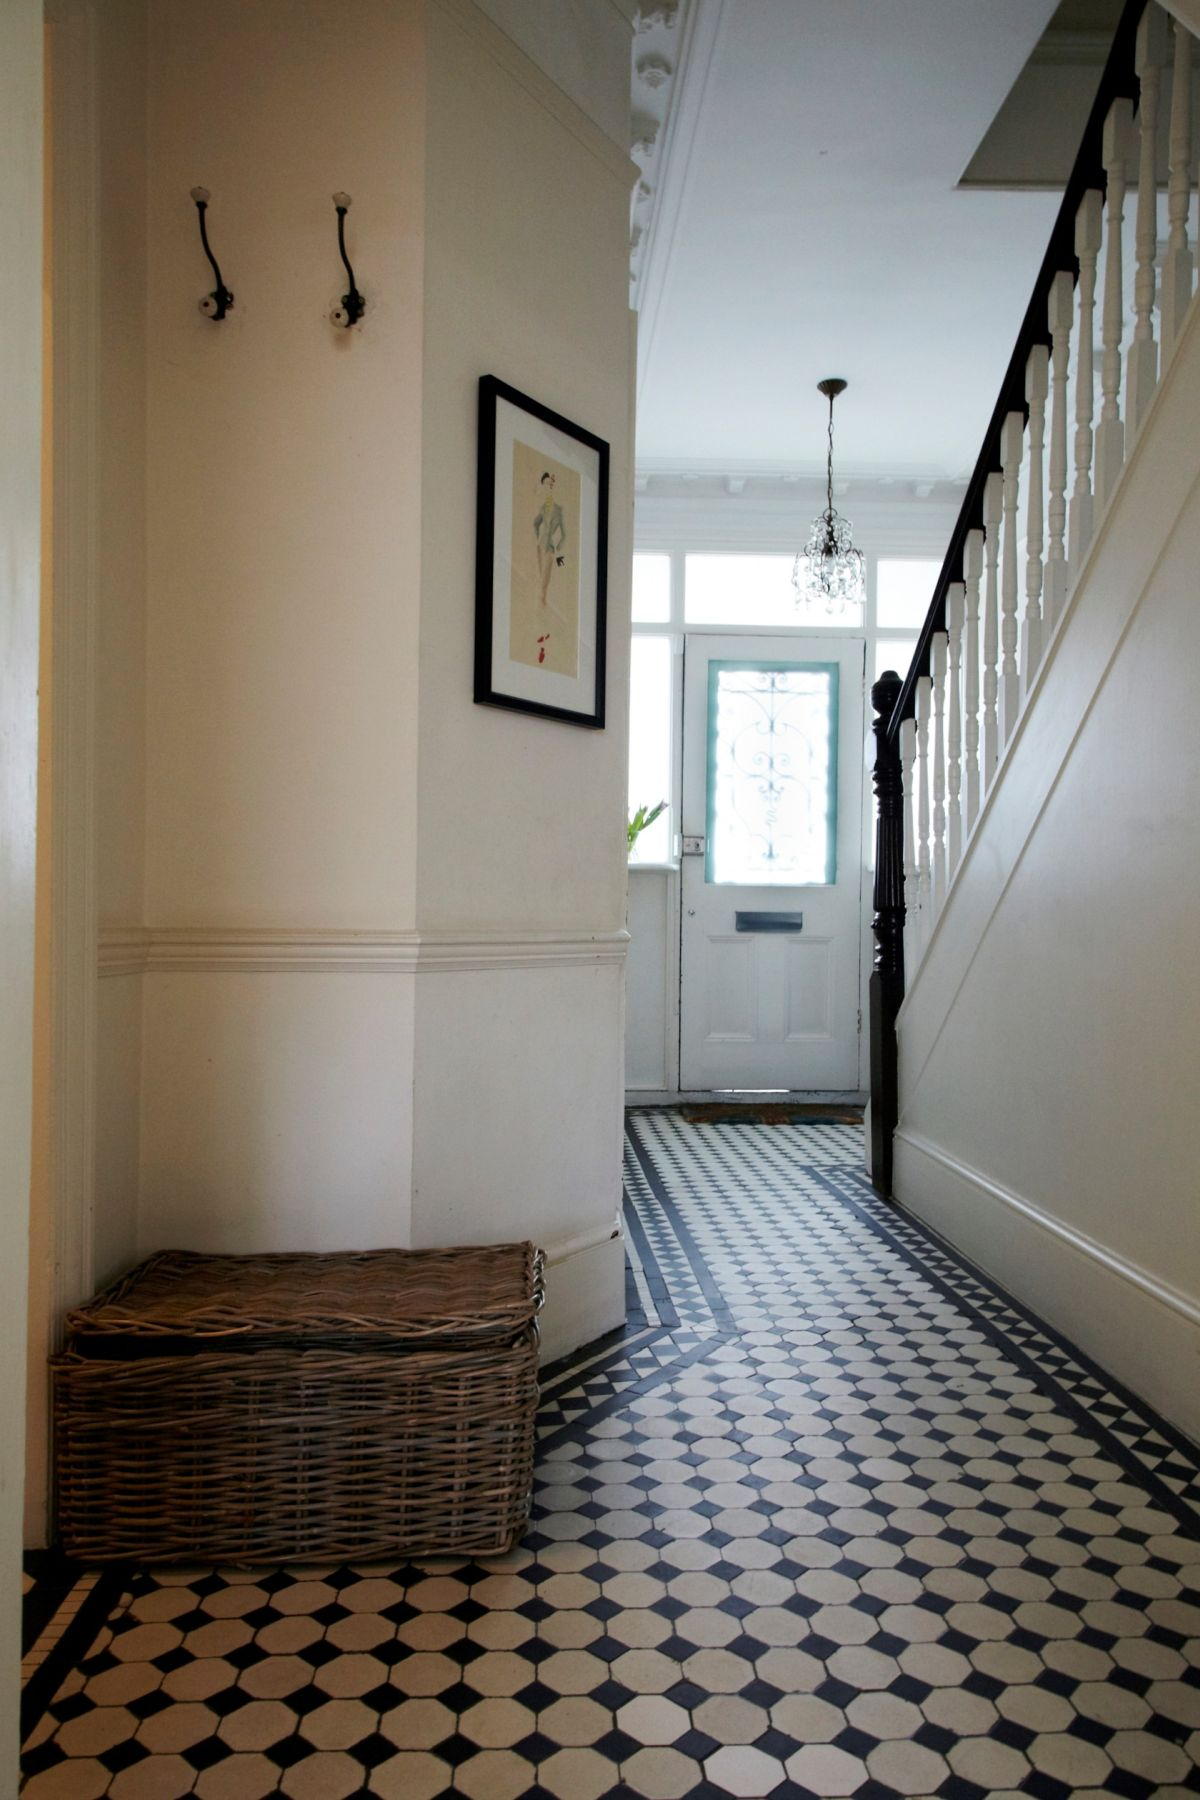 Foyer Flooring Ideas Pictures : Floor tile designs for the foyer